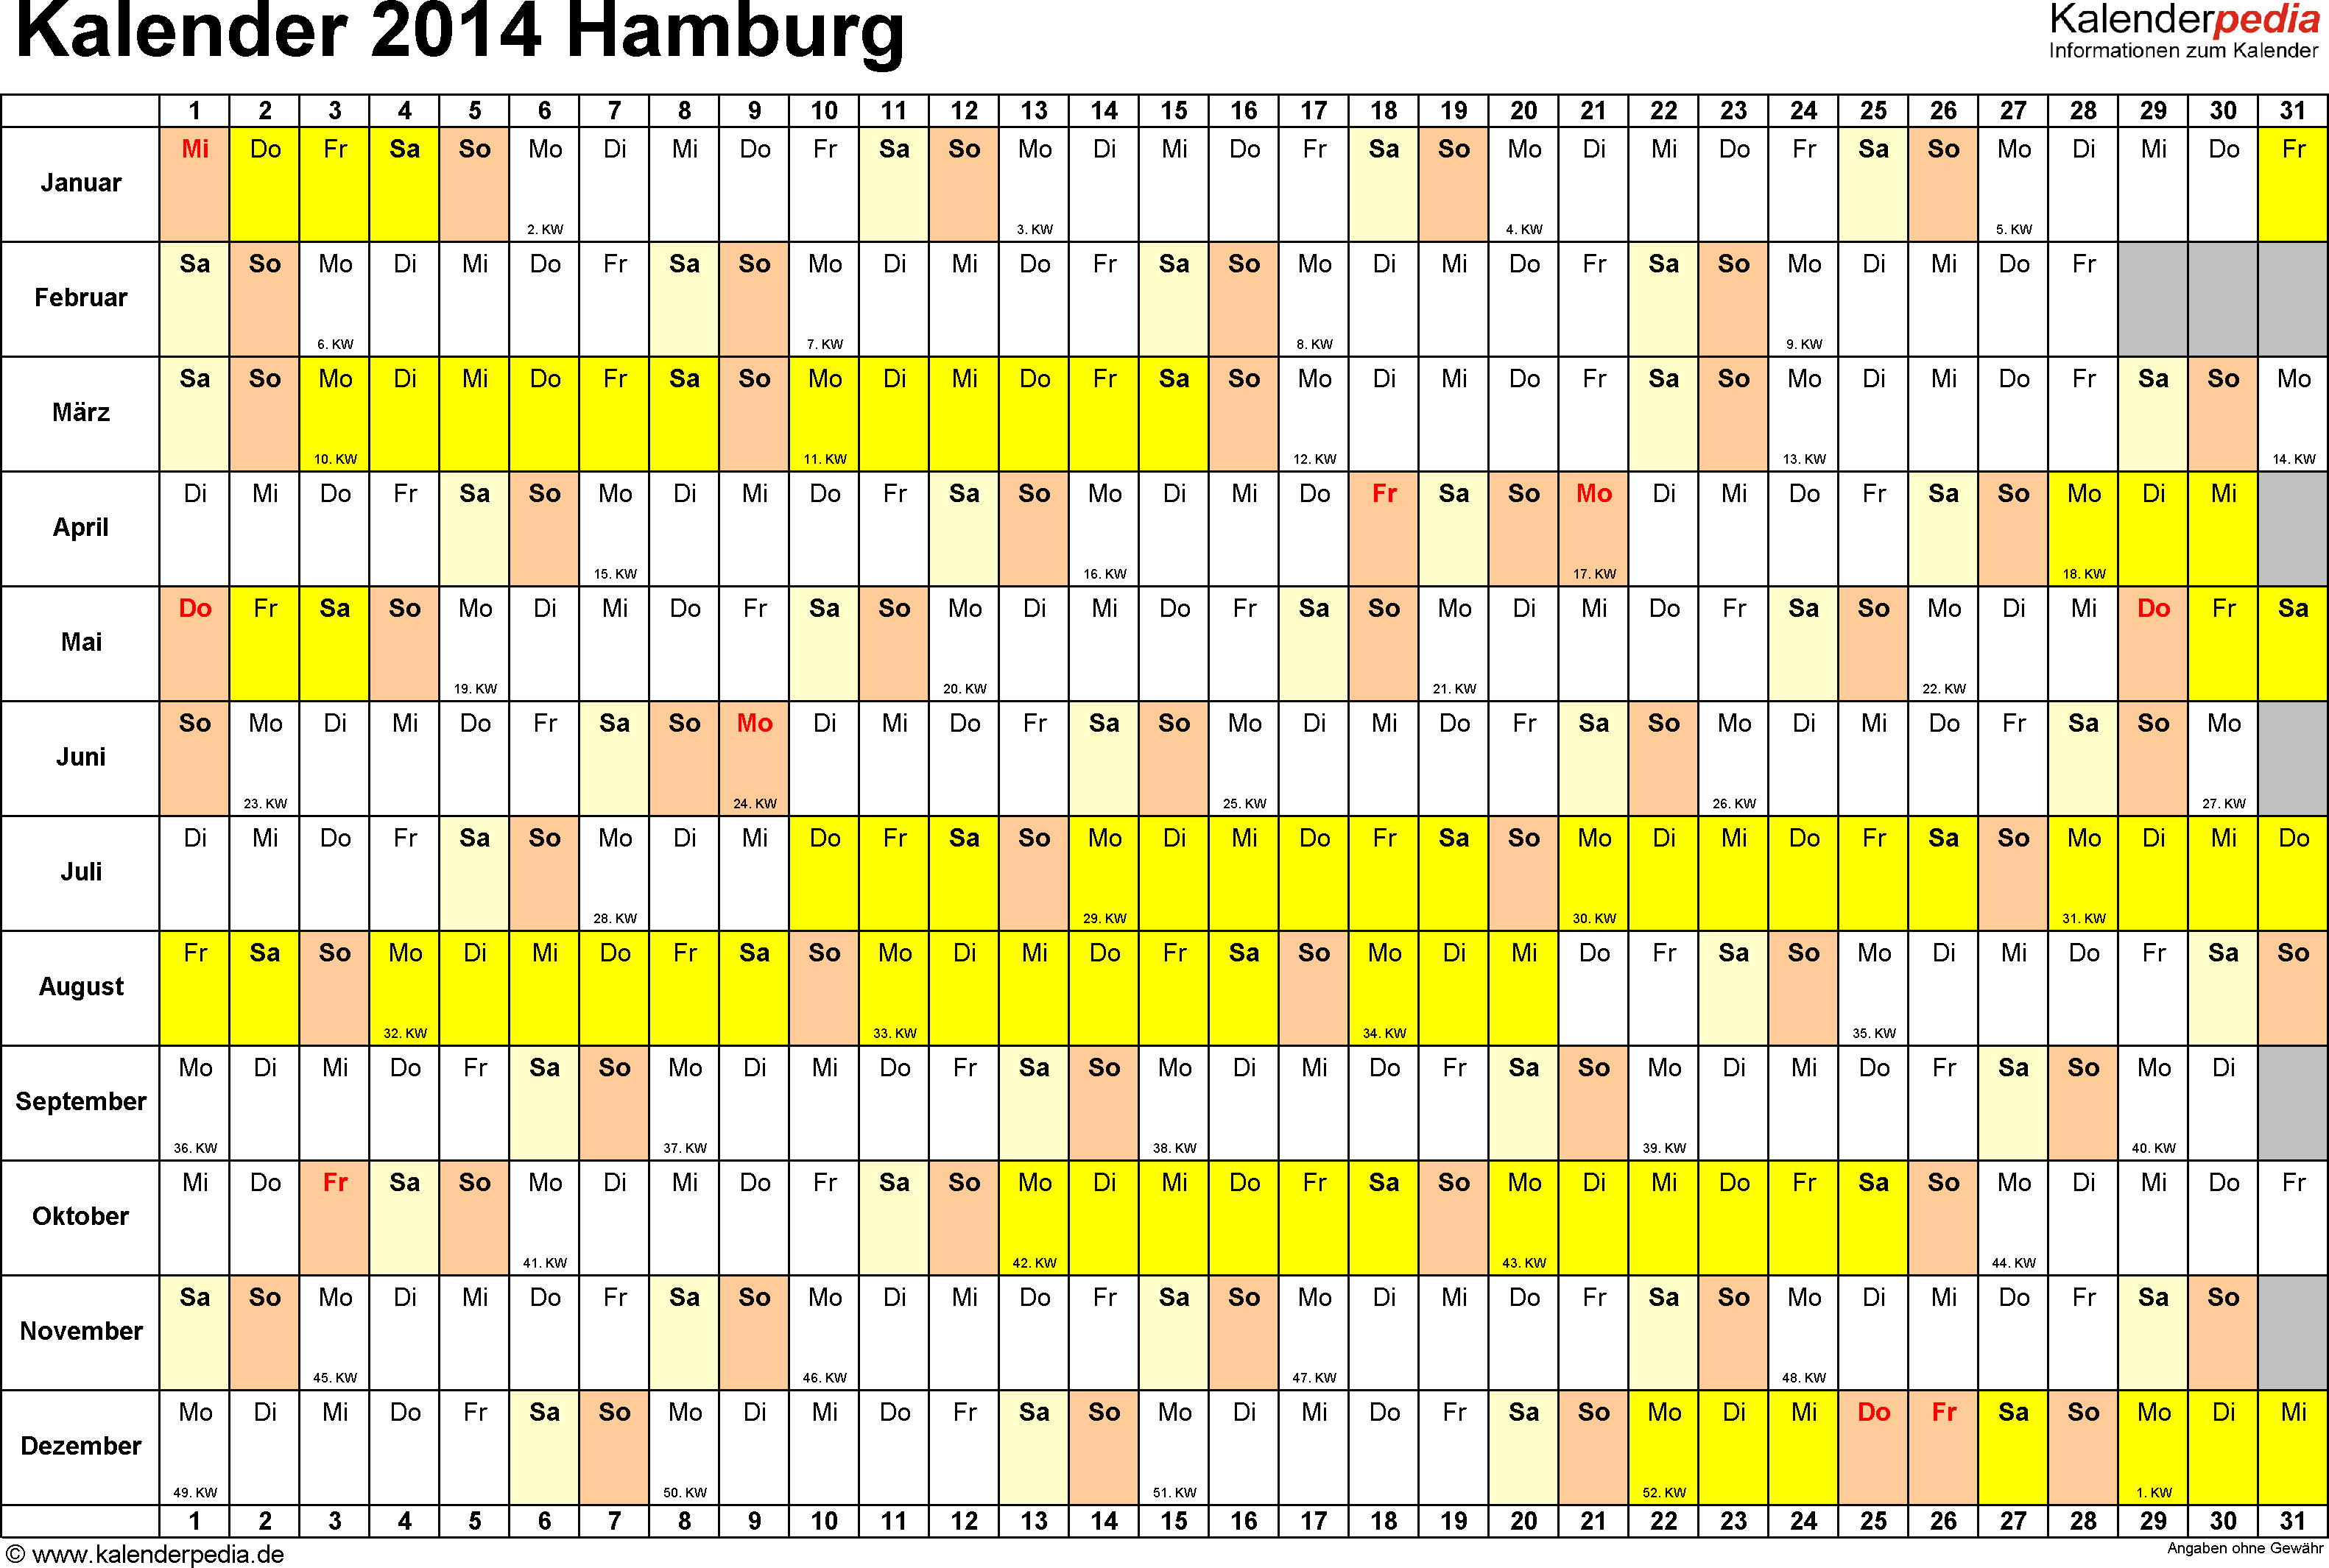 kalender 2014 hamburg ferien feiertage excel vorlagen. Black Bedroom Furniture Sets. Home Design Ideas